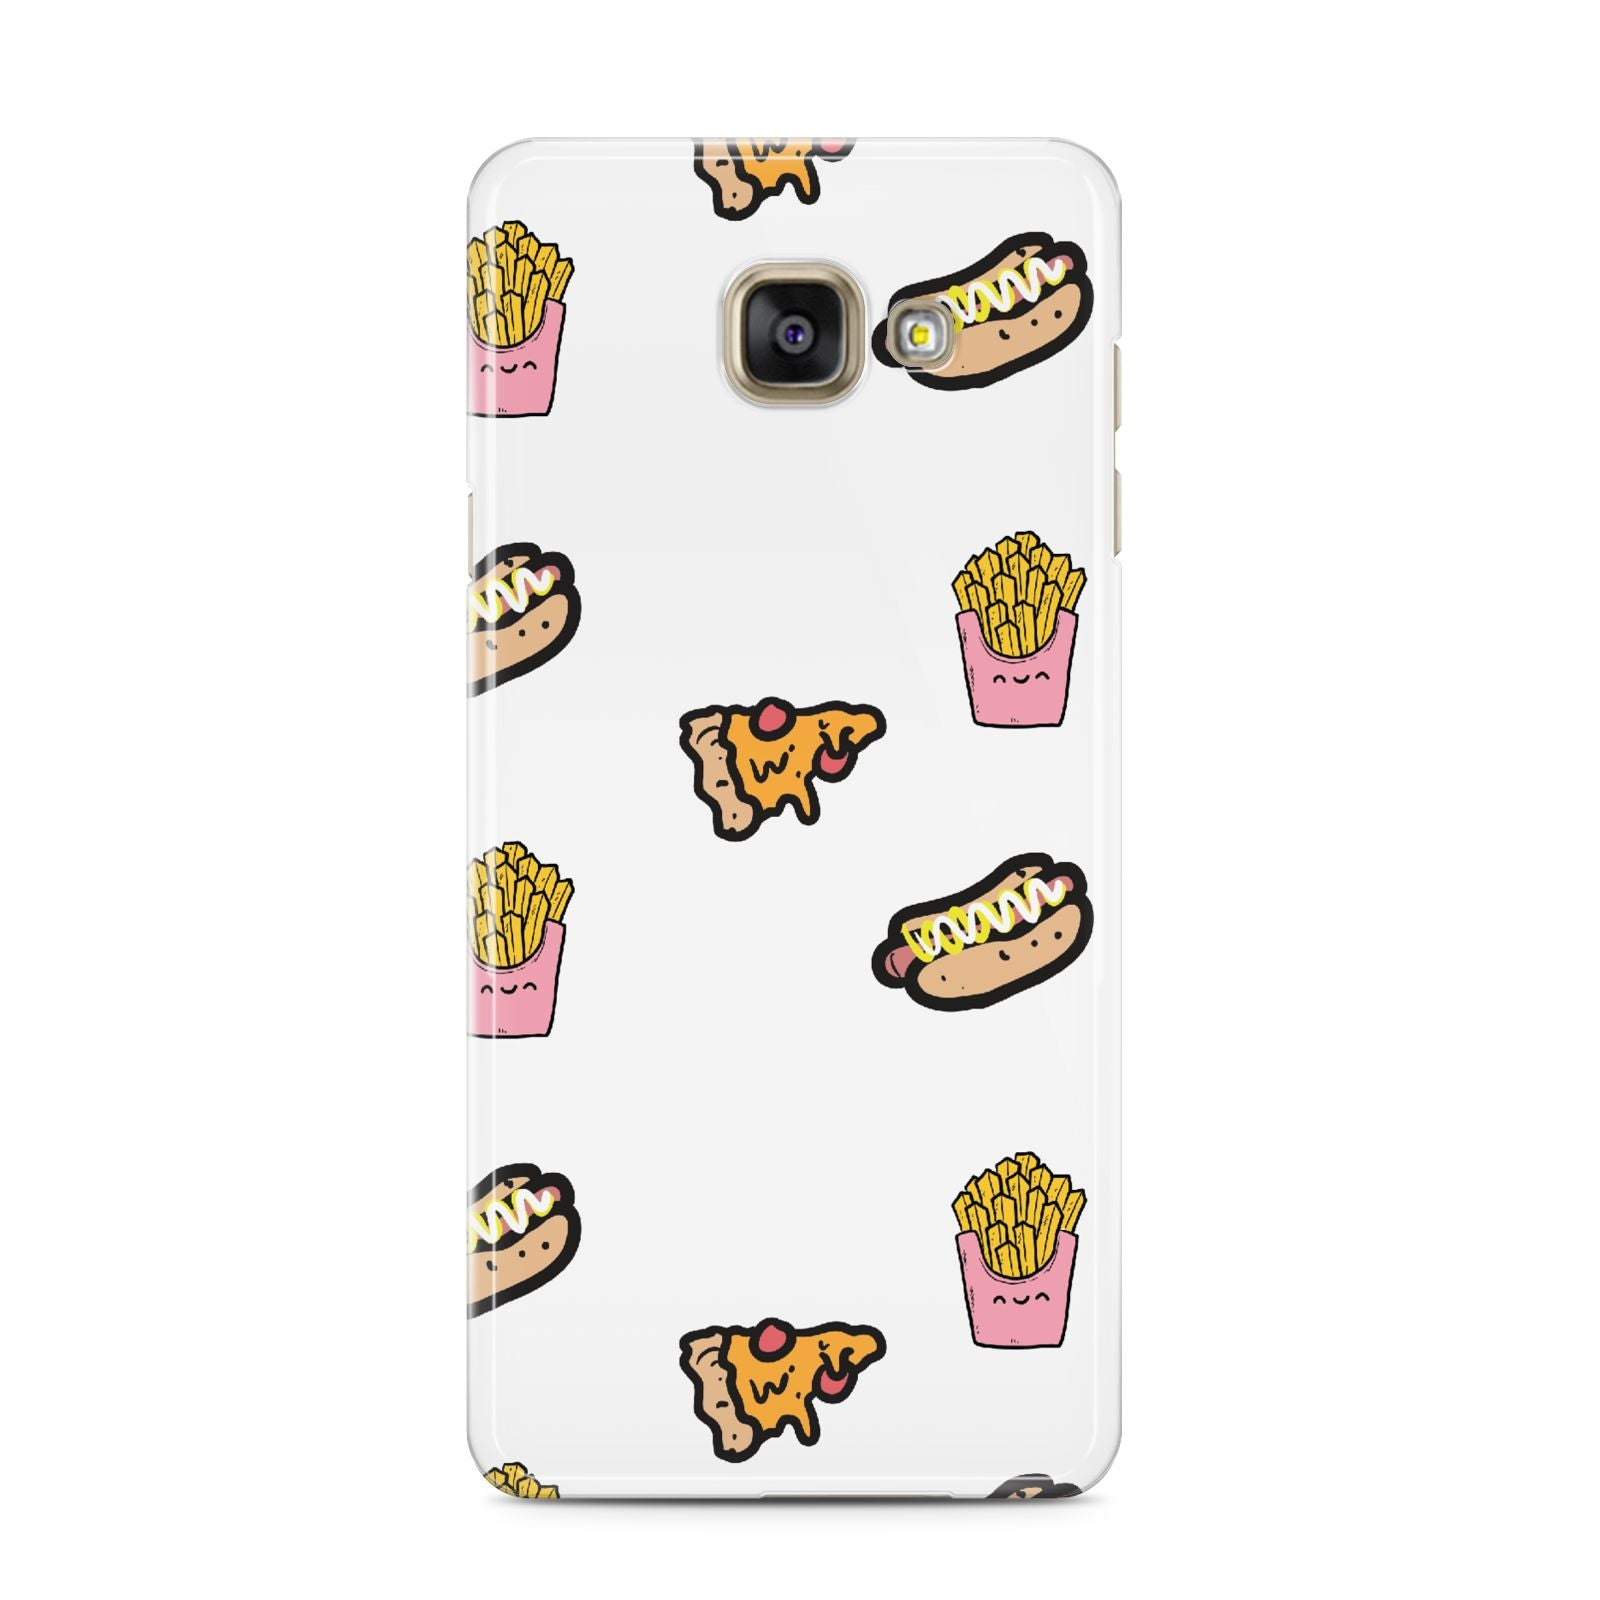 Fries Pizza Hot Dog Samsung Galaxy A3 2016 Case on gold phone